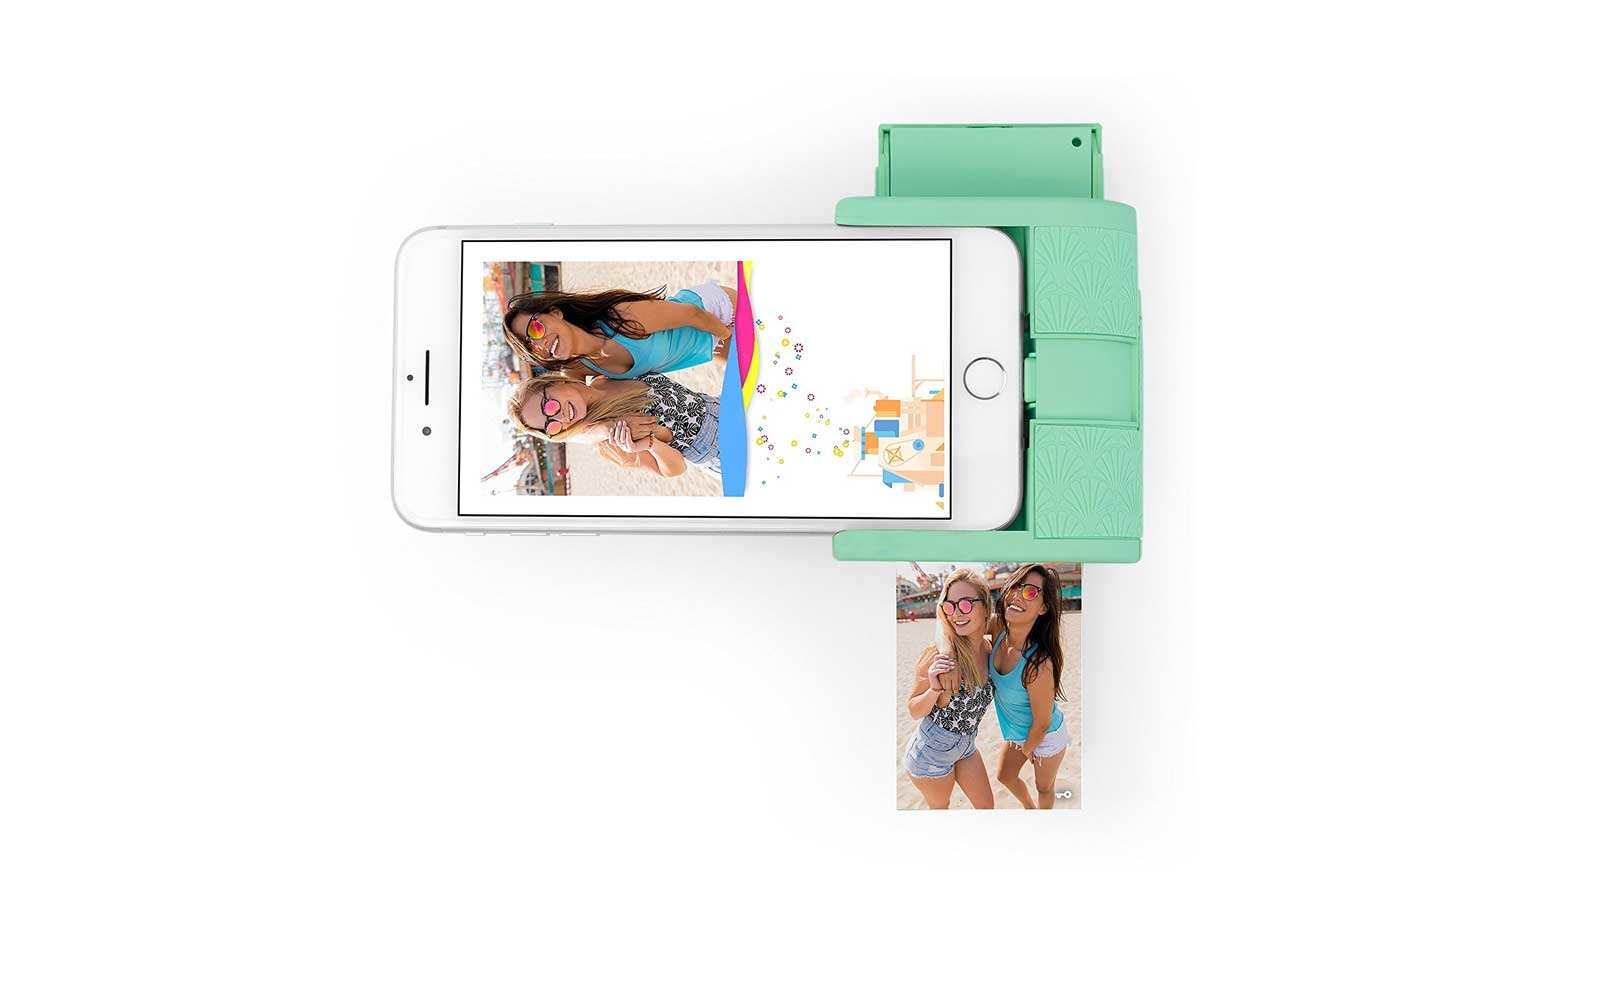 Print photos directly from your smartphone